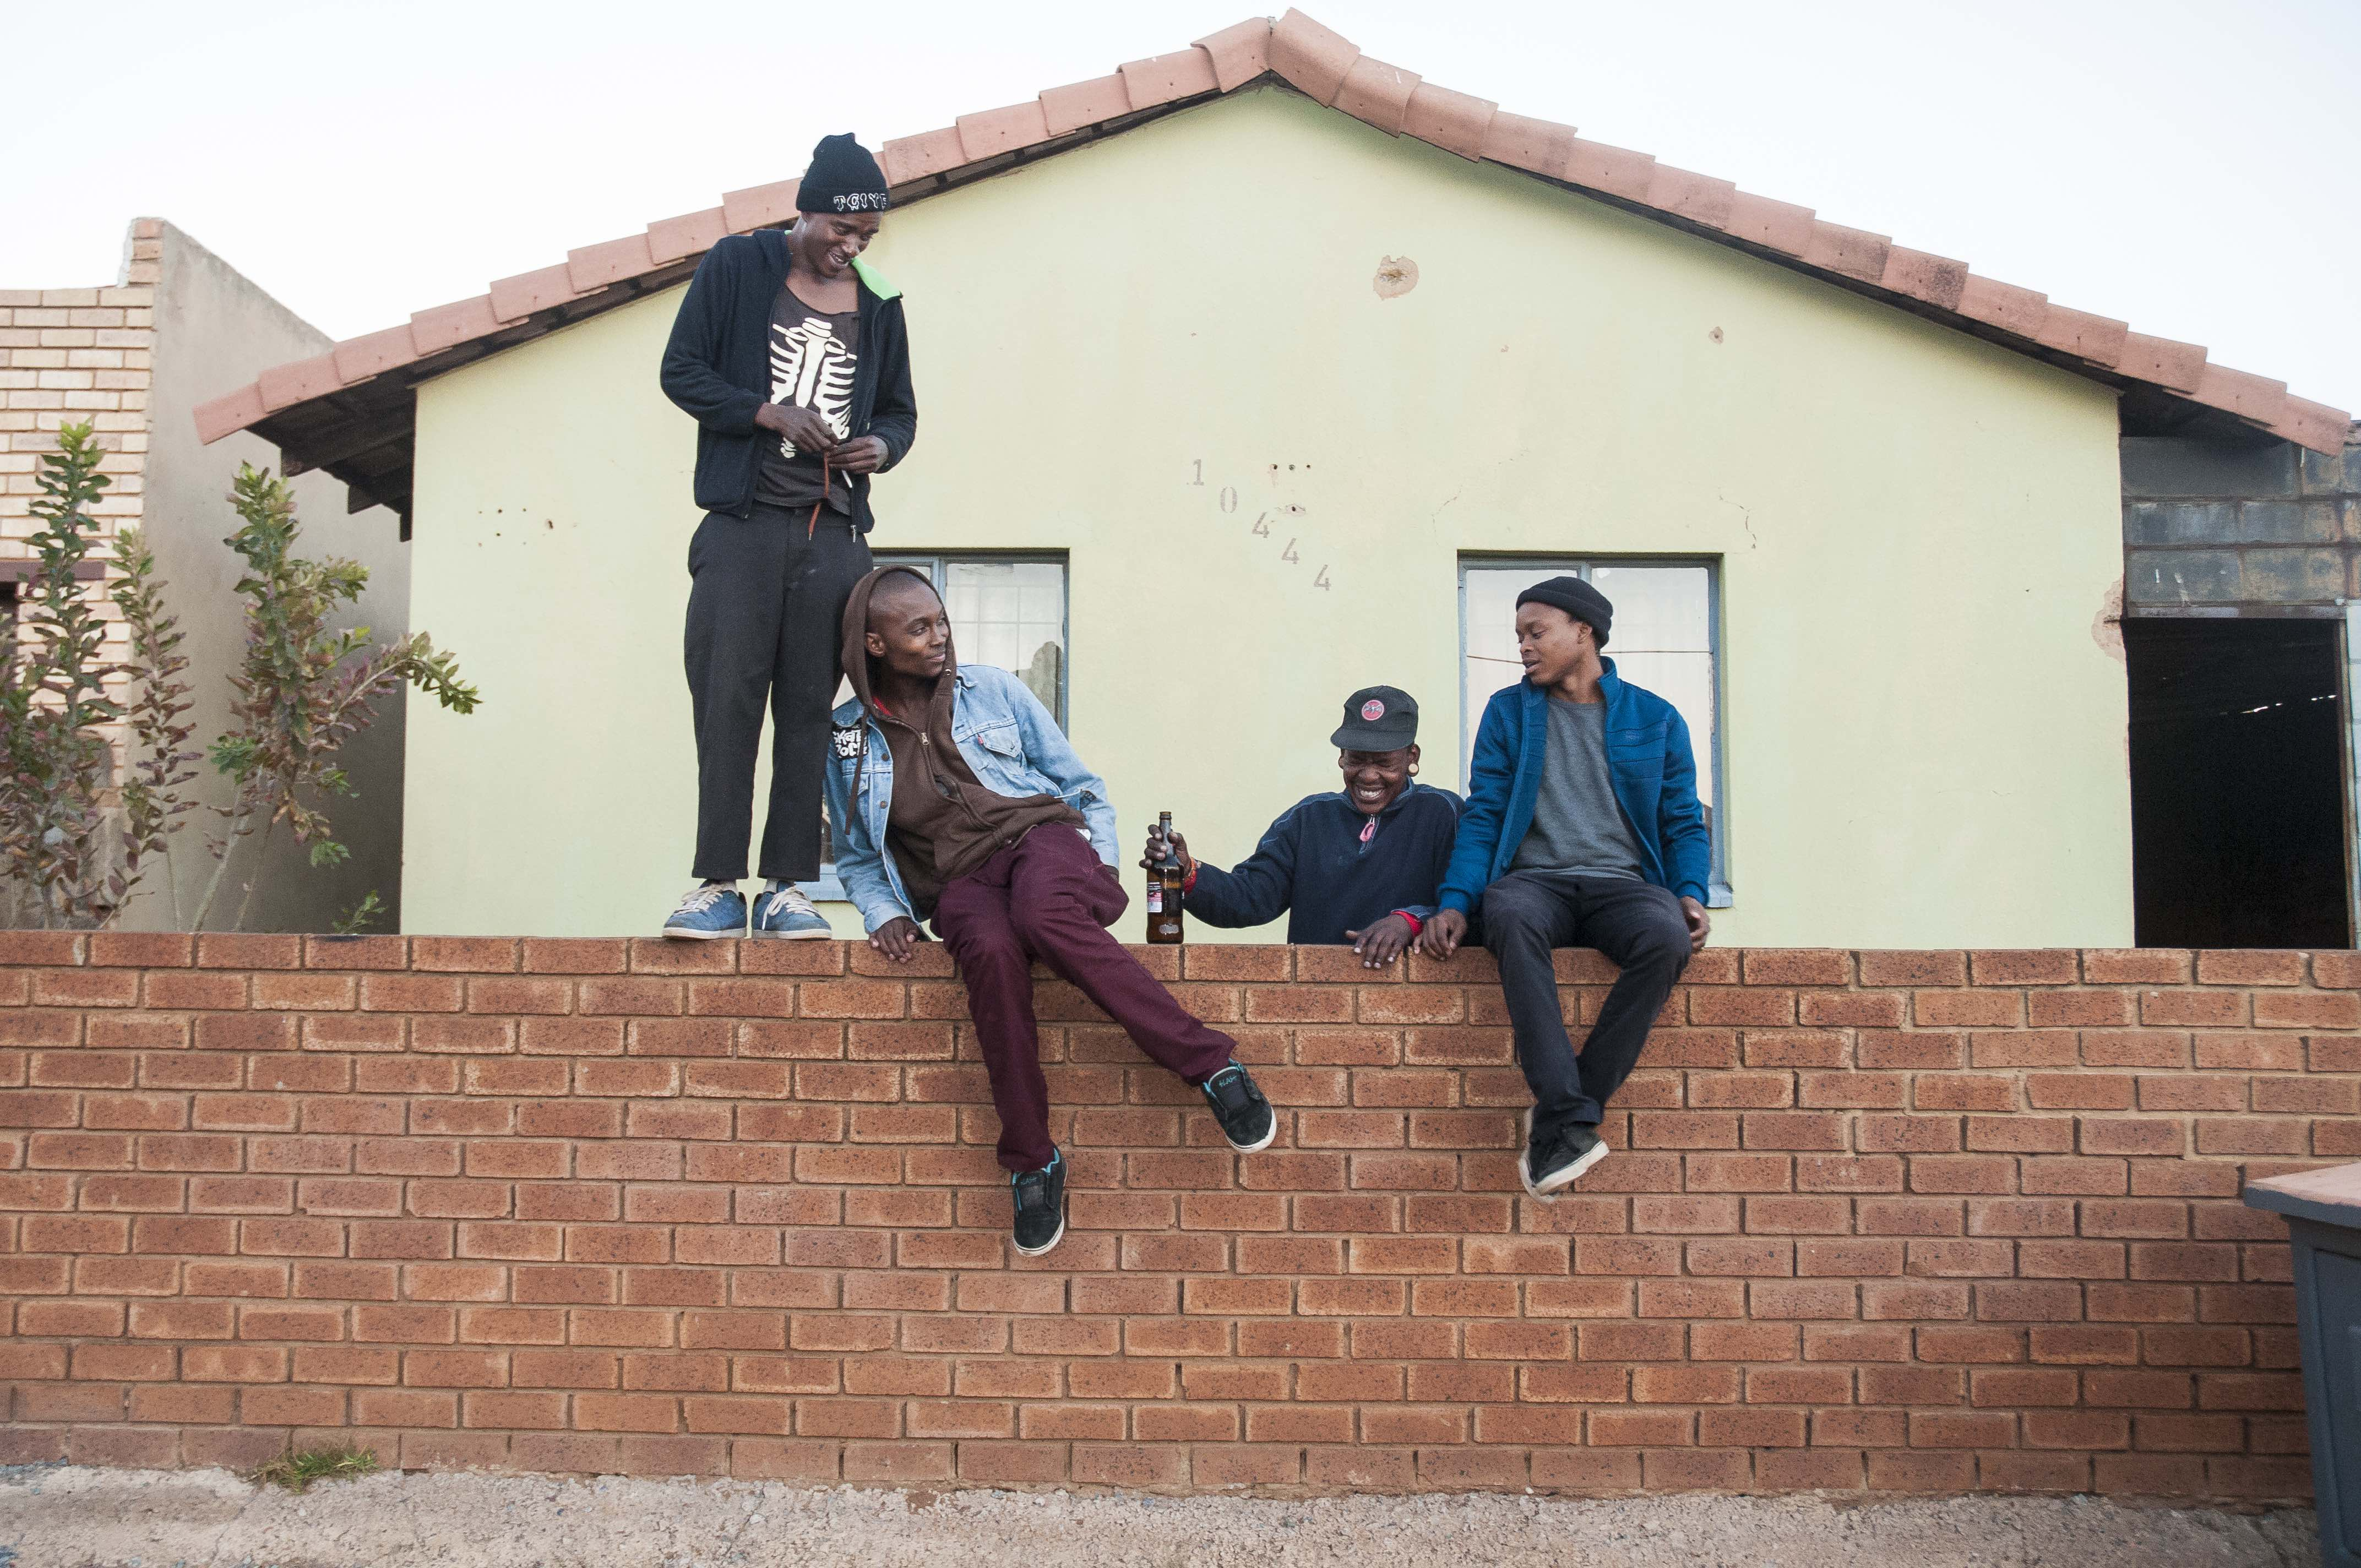 Hanging out at the Dogg Pound, TCIYF's skate house.  Left to right: Thula, guitarist; Pule, lead vocalist;  Jazz, drummer; Toxic, bassist.